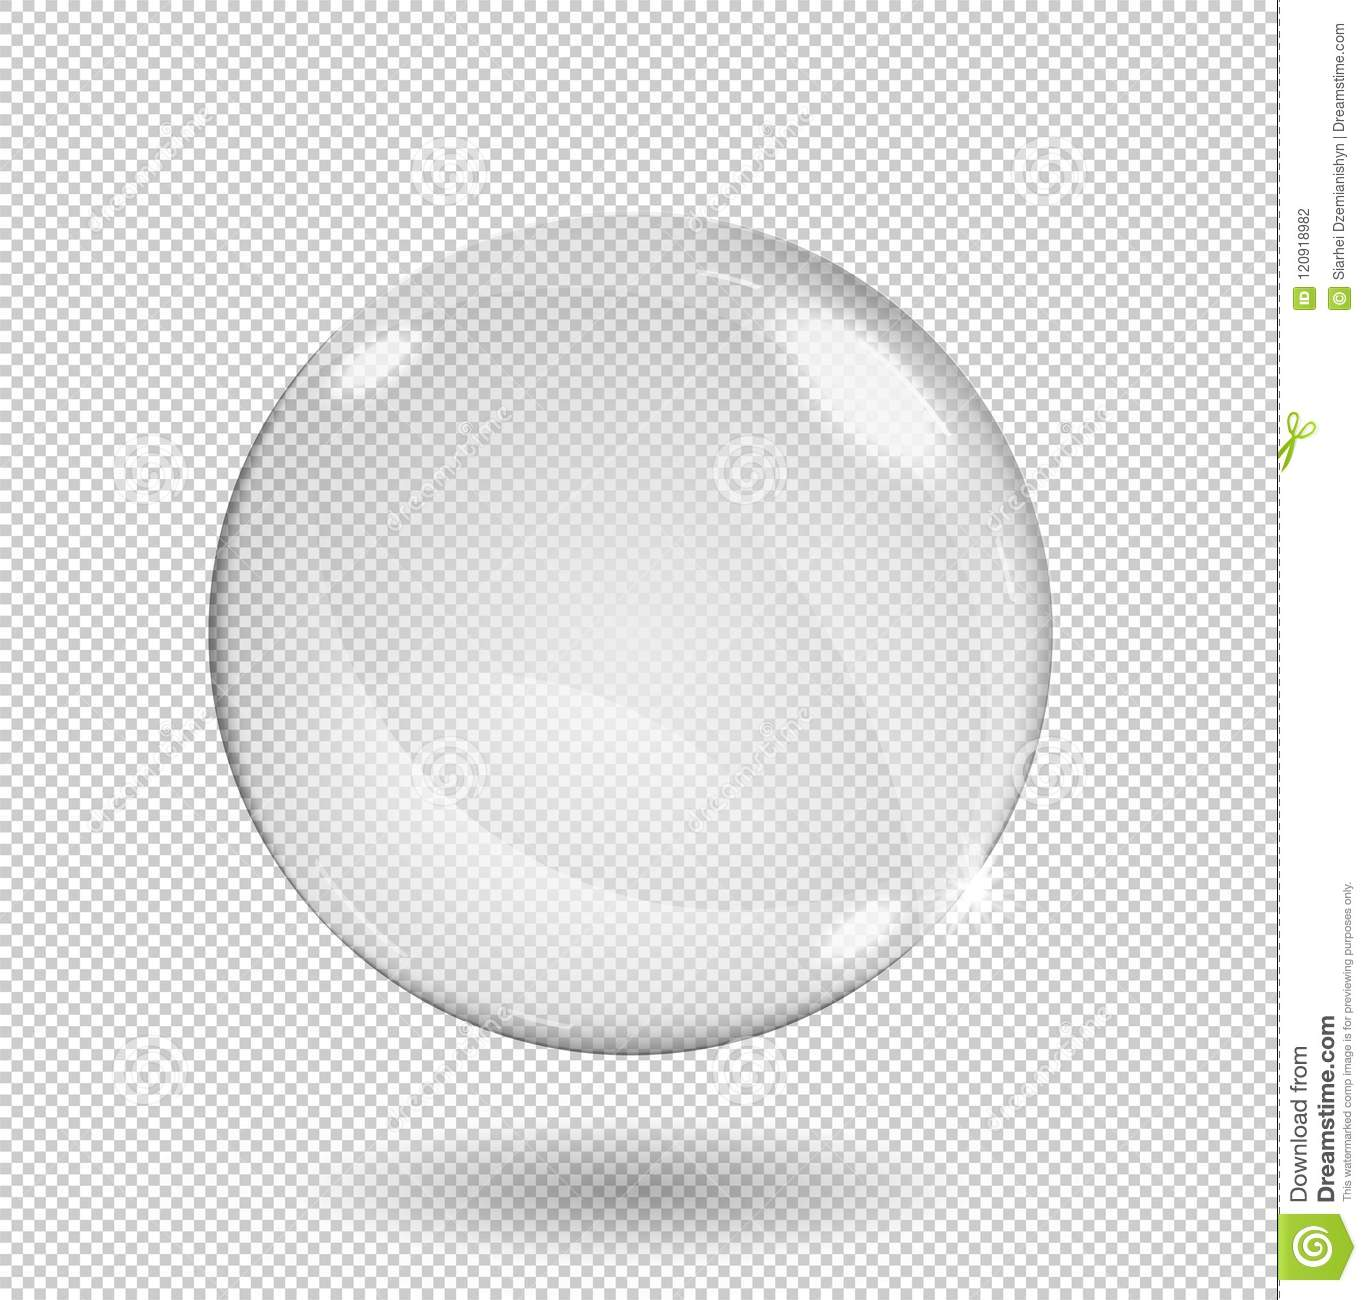 Big white transparent glass sphere with glares and highlights. Transparency only in vector format.